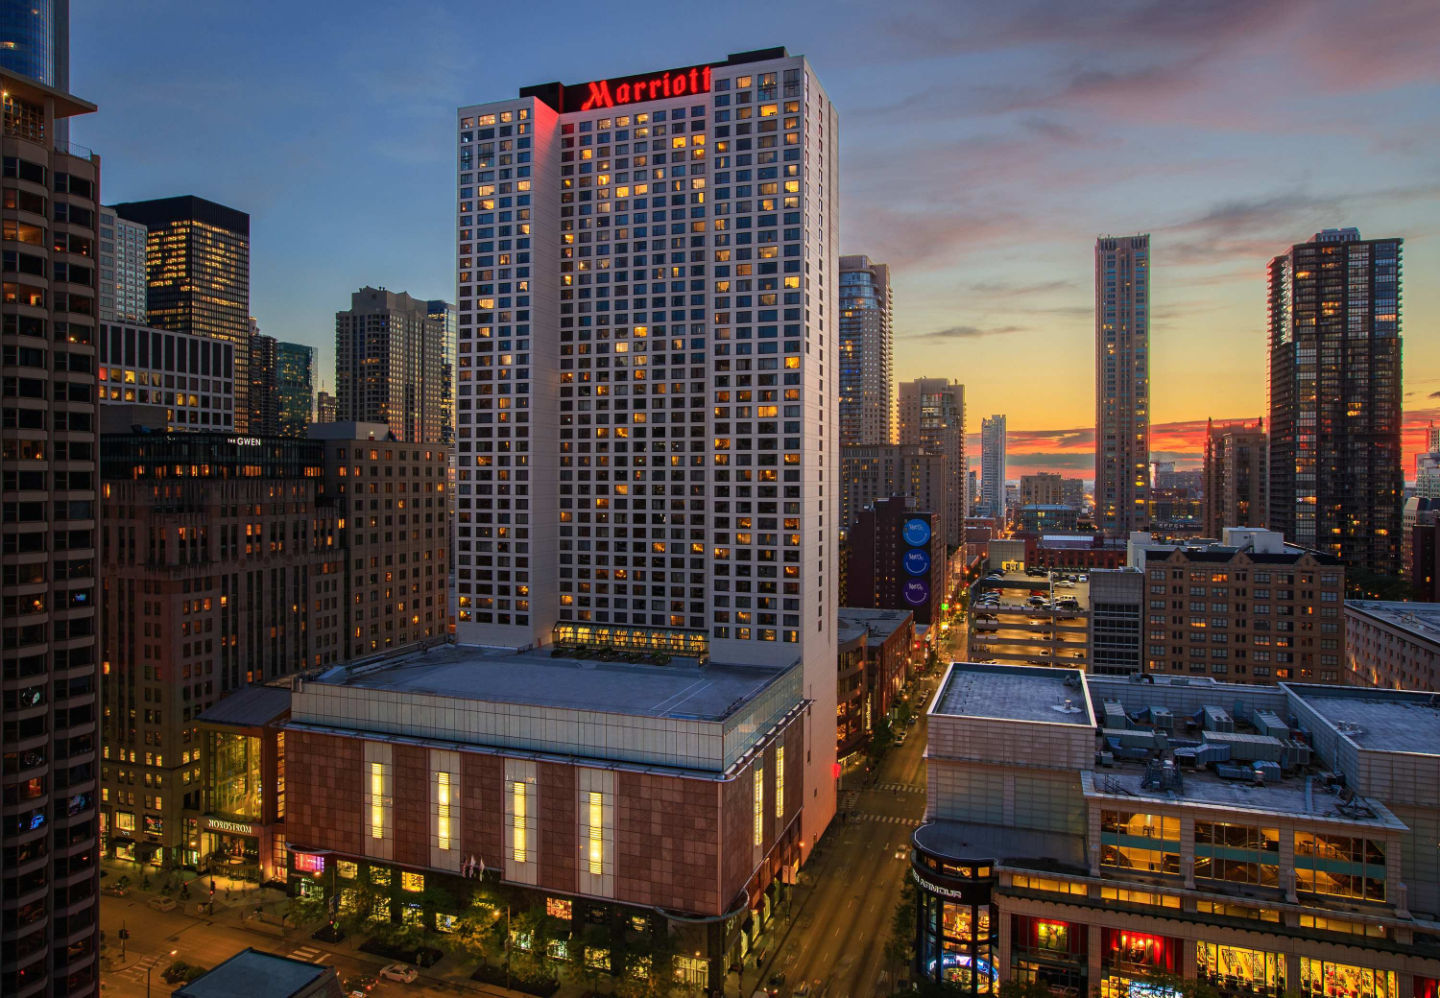 The Chicago Marriott Downtown Magnificent Mile has completed its multi-million dollar meeting-and-event-space renovation